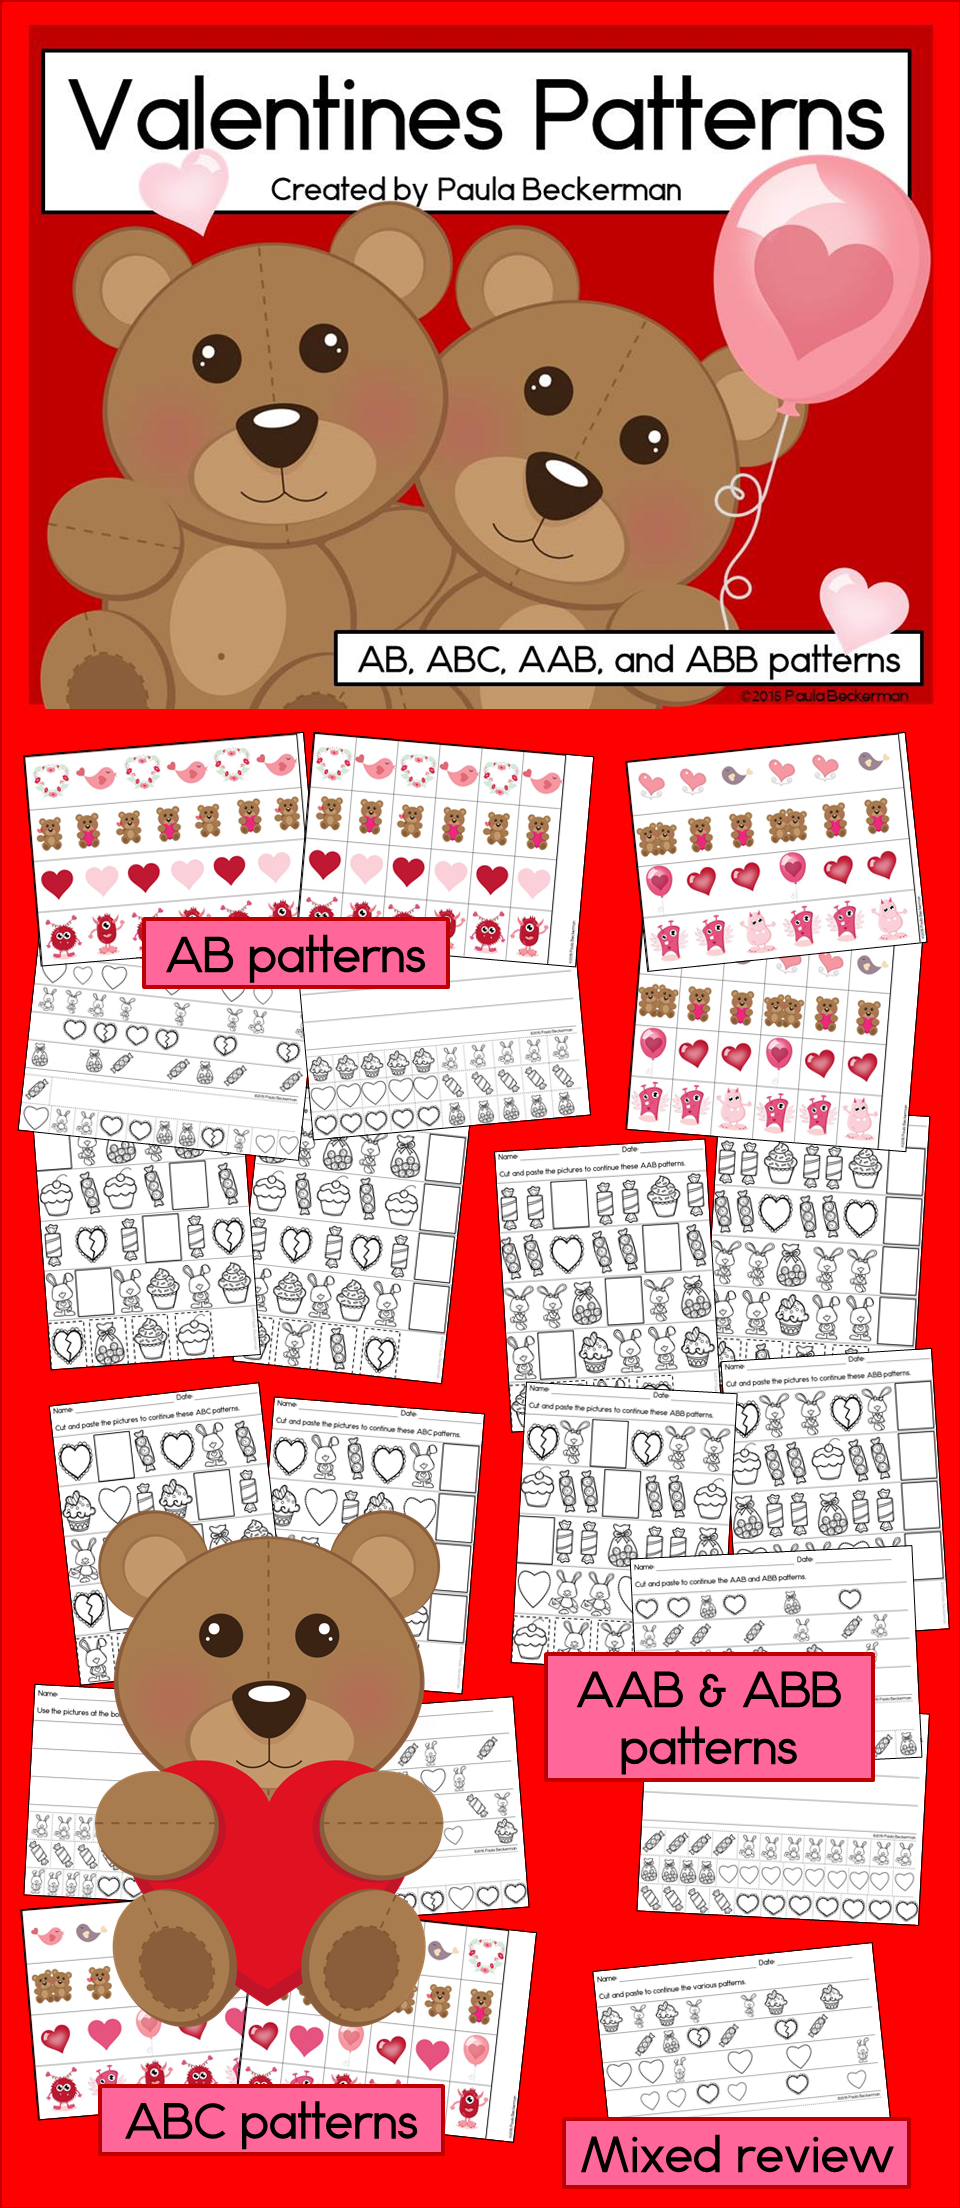 Valentines Patterns Math Center with AB, ABC, AAB & ABB Patterns